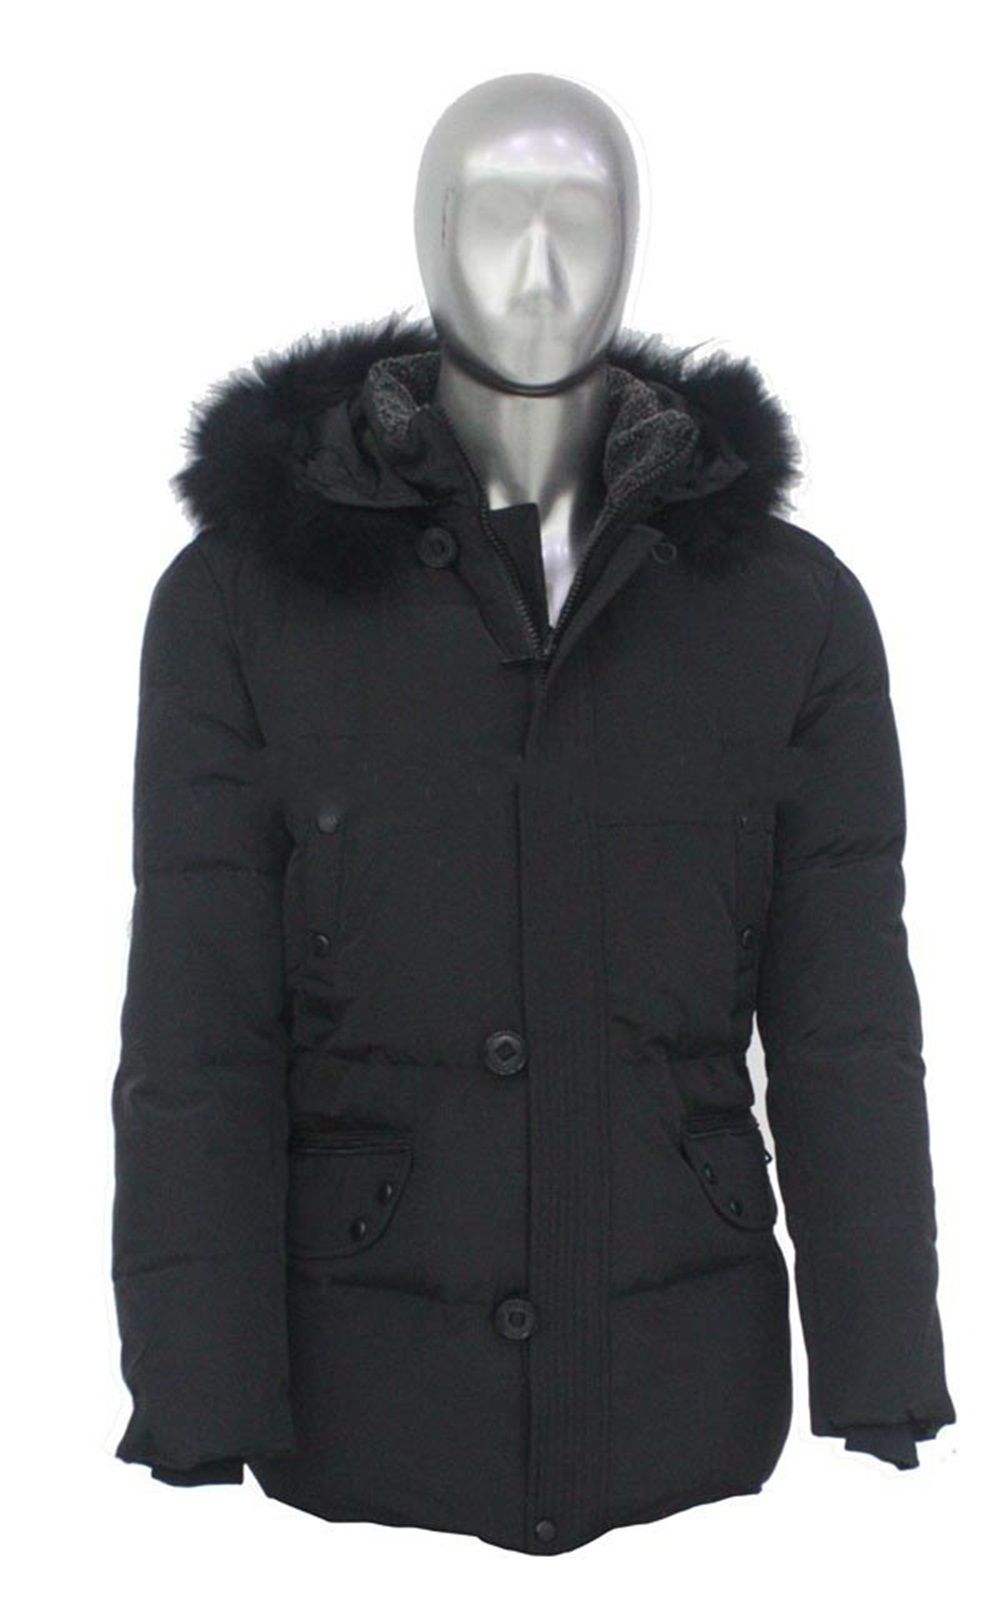 Men jacket,fashion jacket,latest winter jacket for men 8197